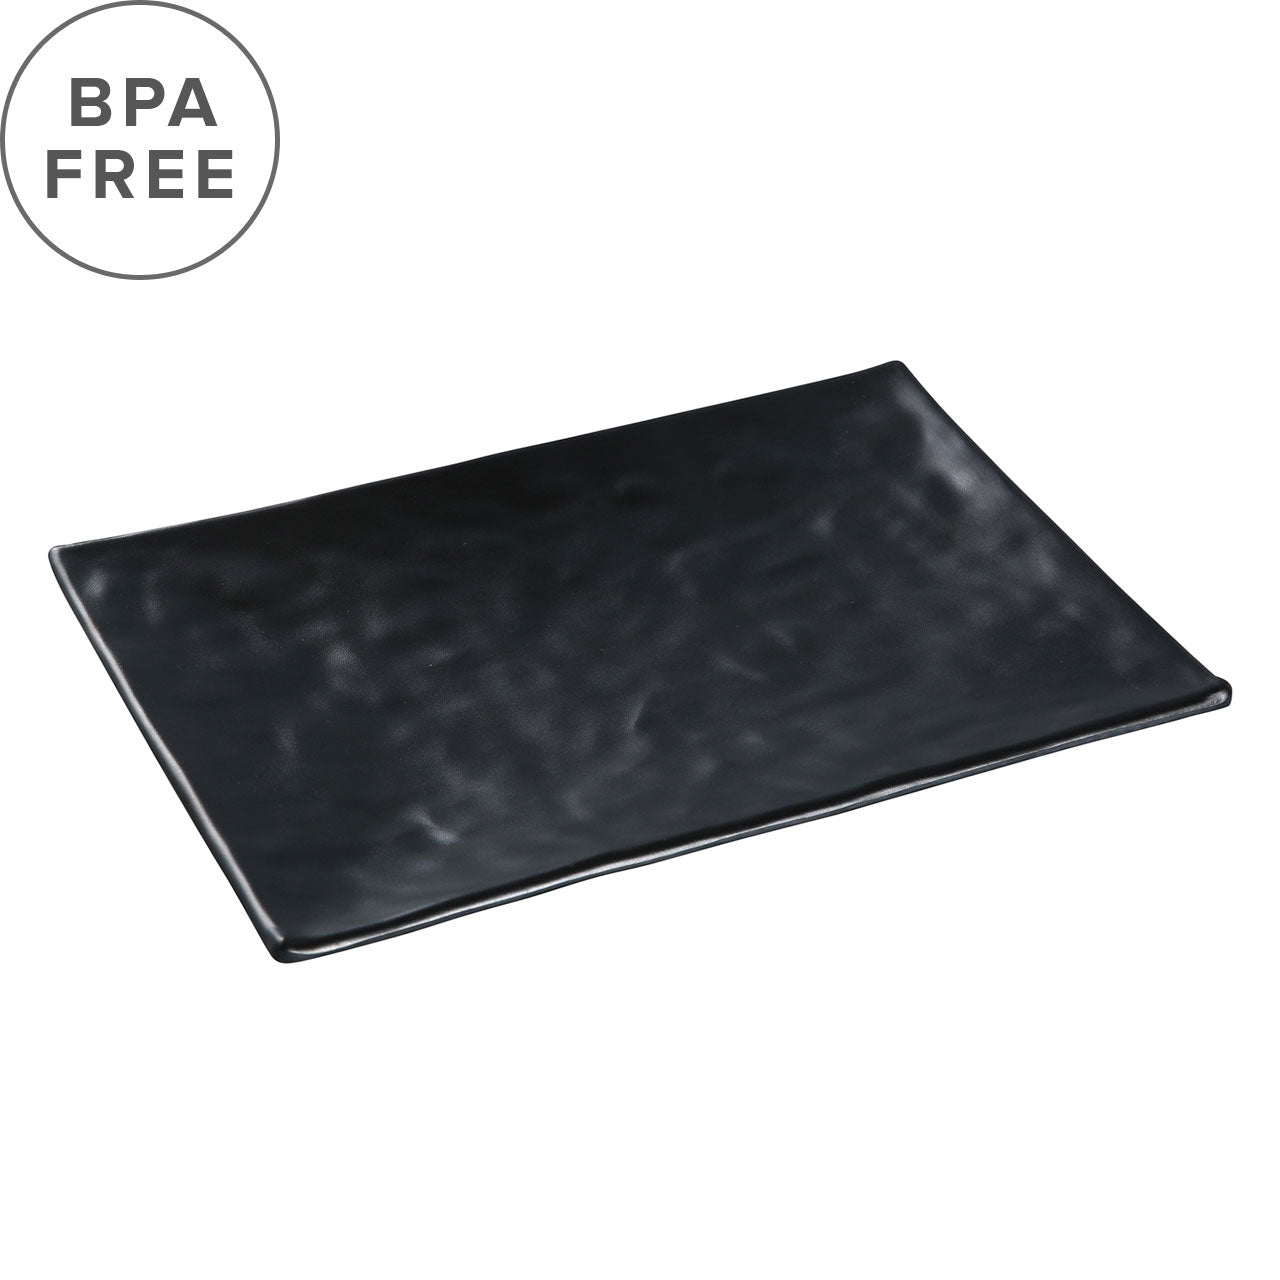 "Melamine Black Matte Textured Rectangular Plate 9.84"" x 6.81"""